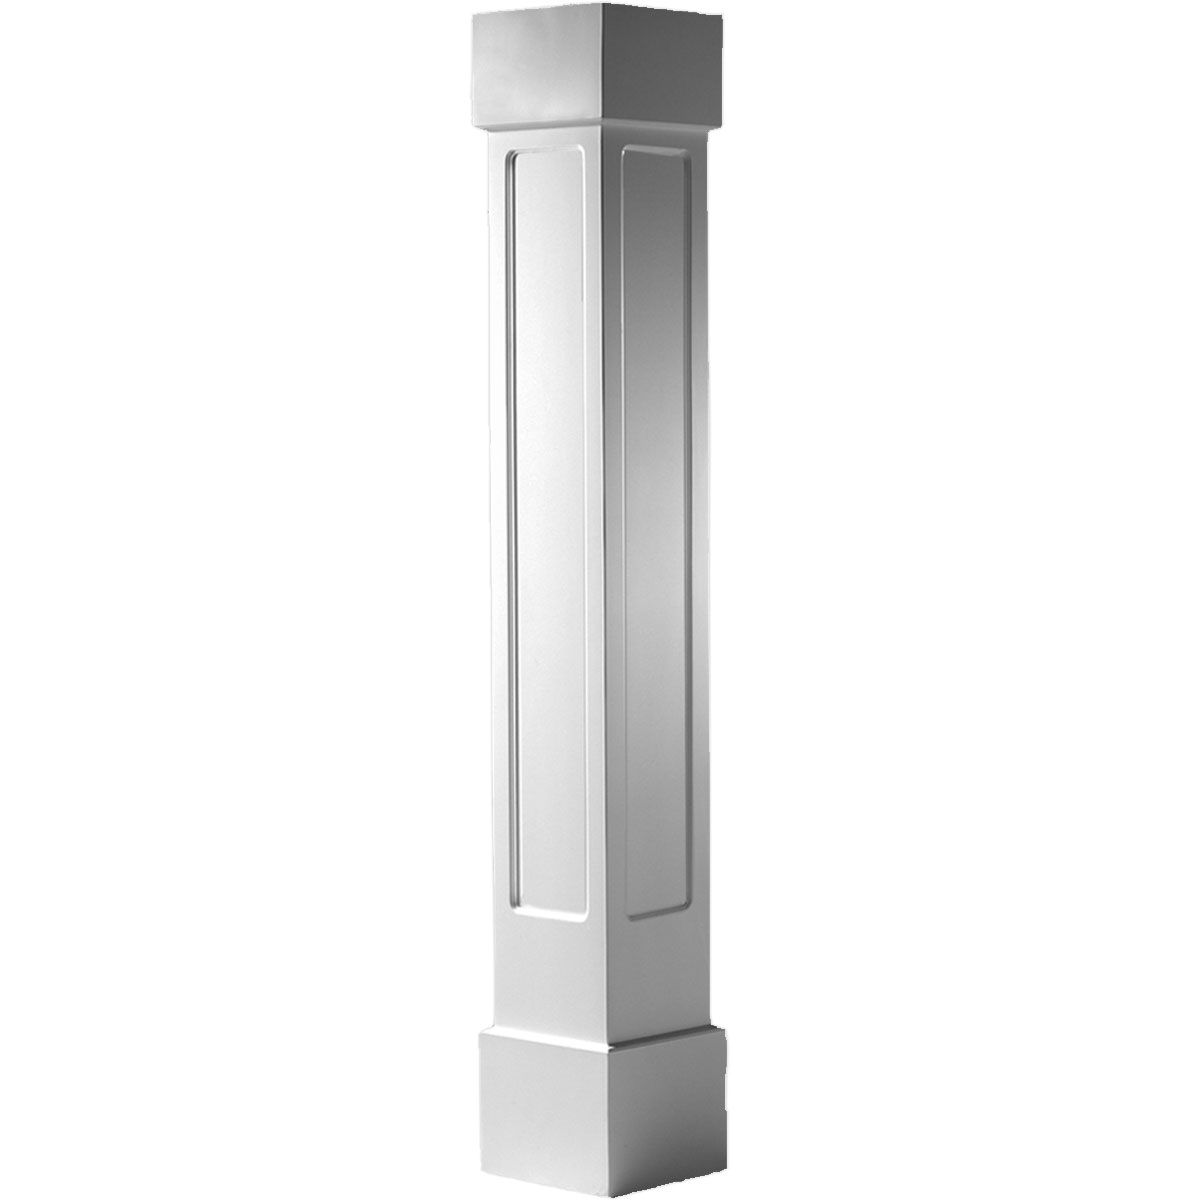 Craftsman classic square non tapered recessed panel column Craftsman columns